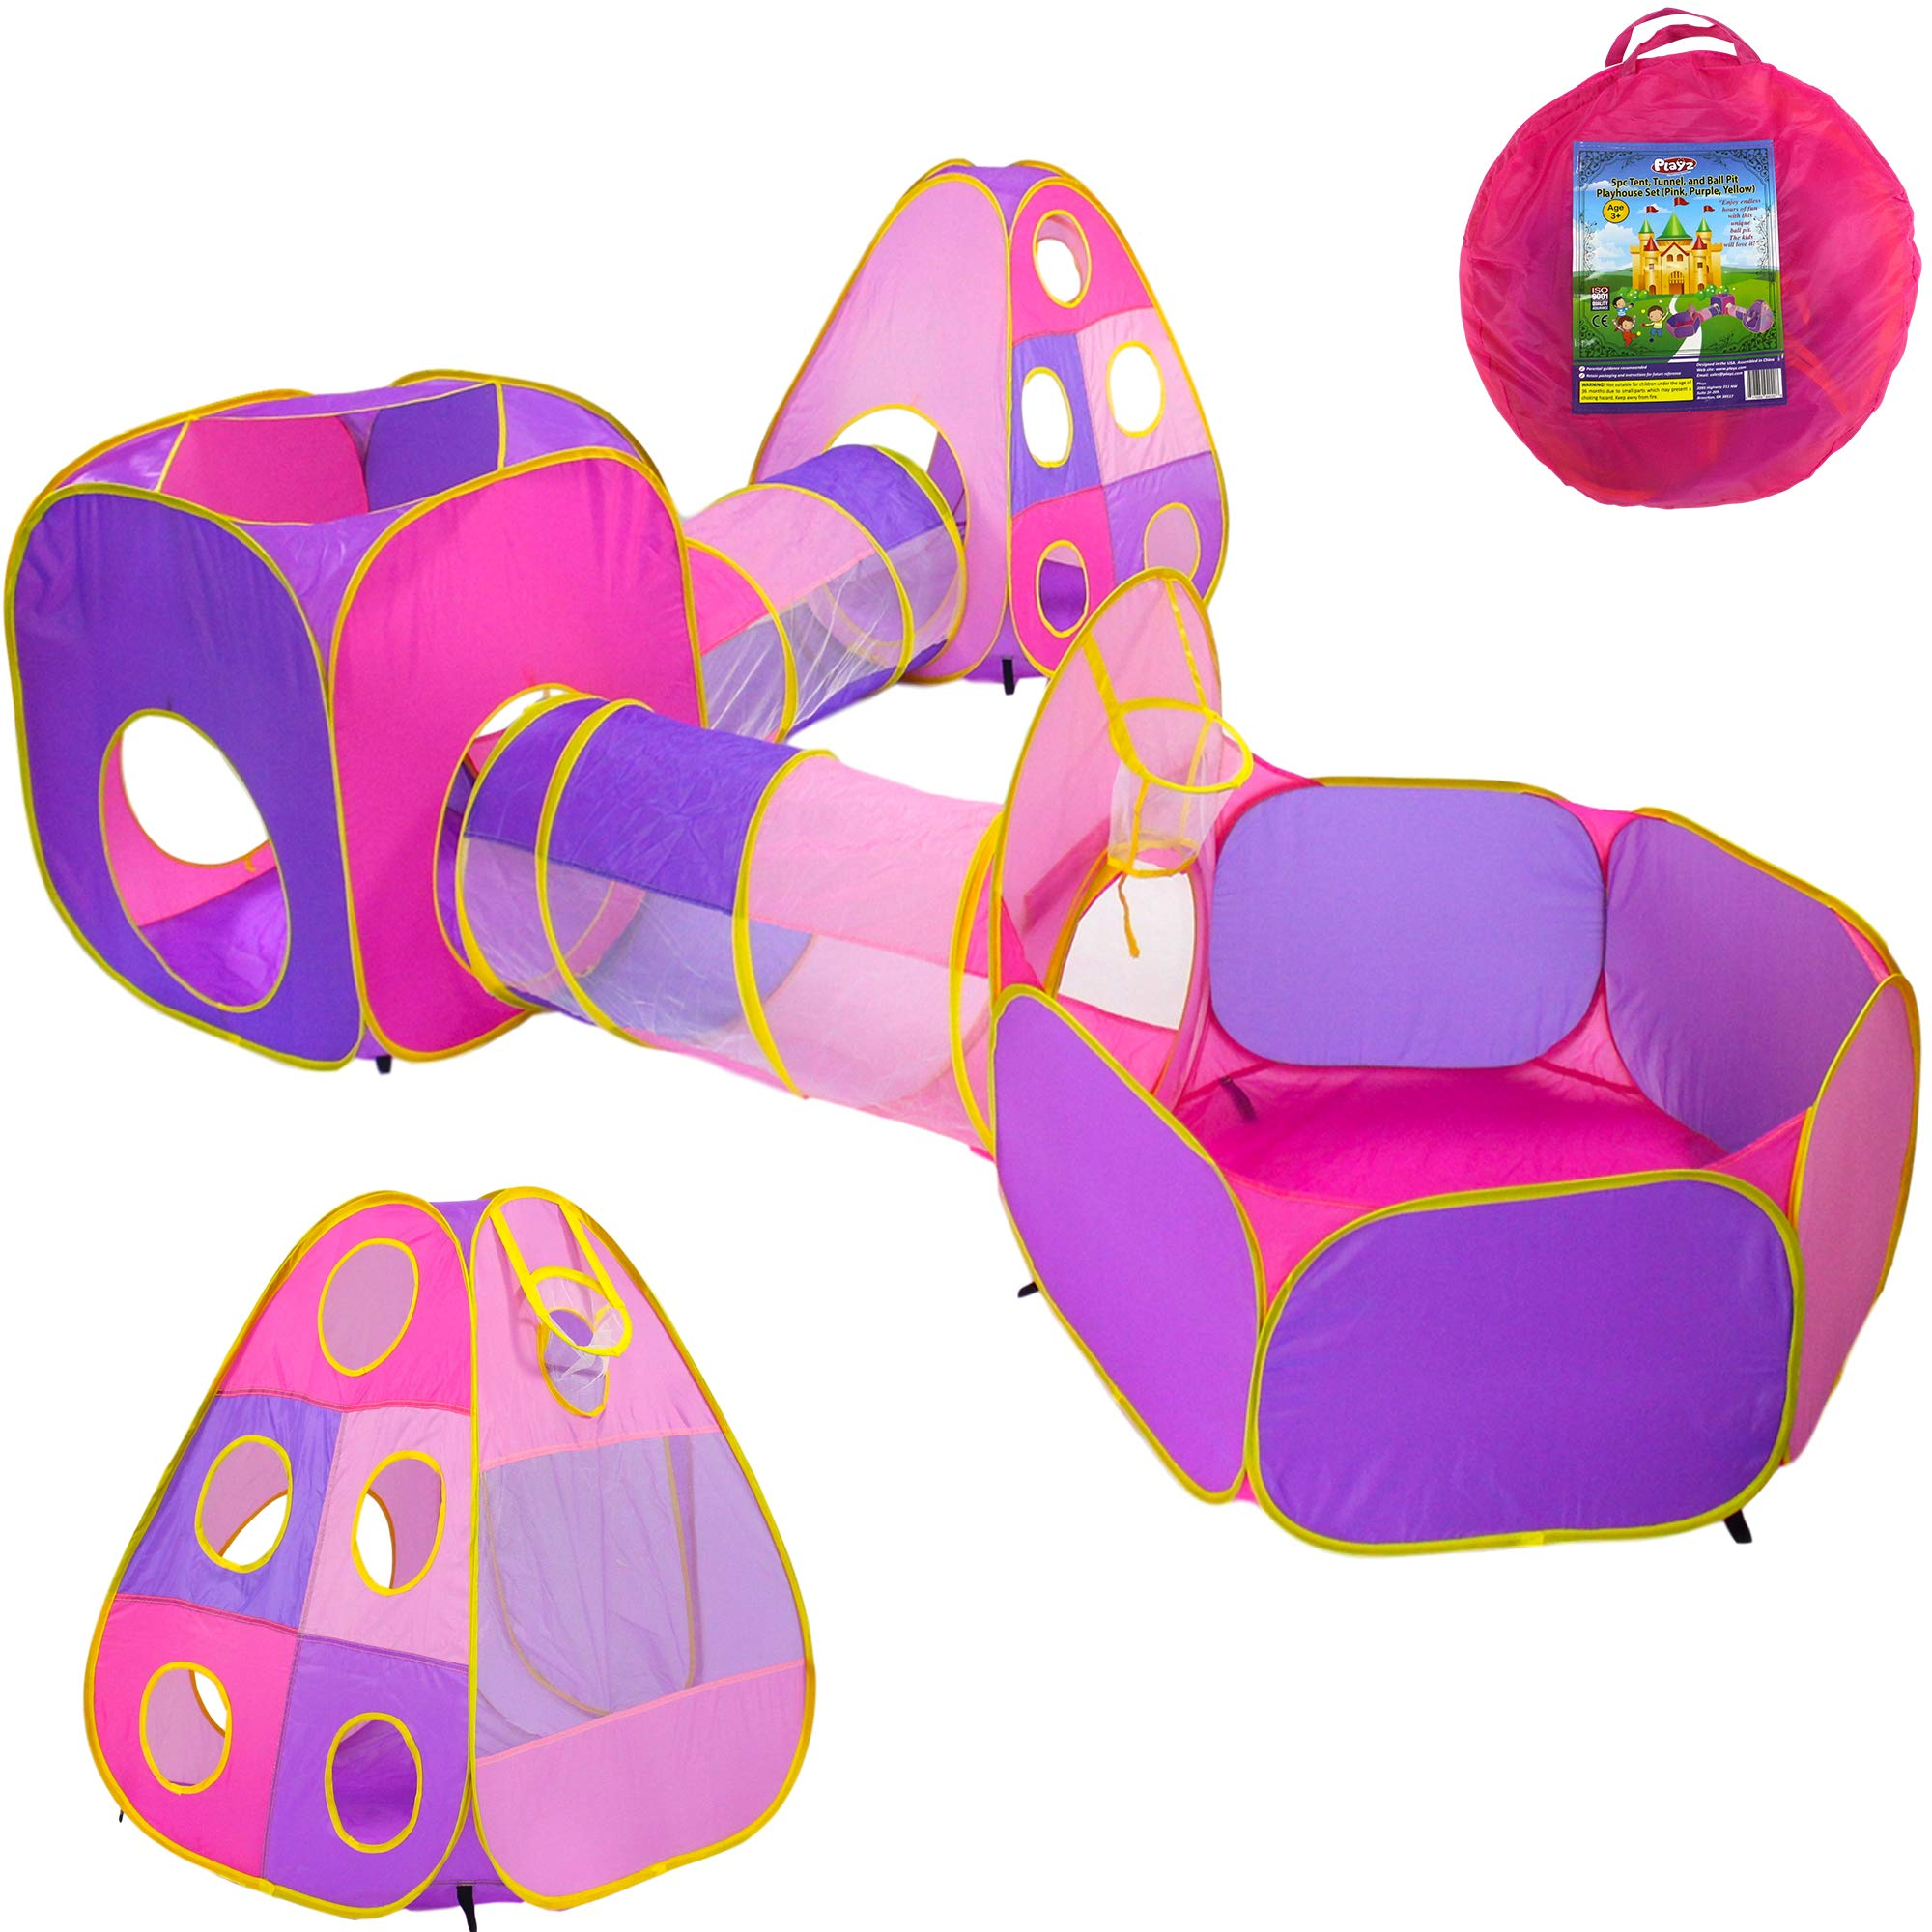 Playz 5pc Children's Playhouse Popup Tents, Tunnels, and Basketball Hoop for Girls, Boys, Babies, Kids and Toddlers with Zipper Storage Case for Indoor & Outdoor Use (Yellow, Pink, Purple) by Playz